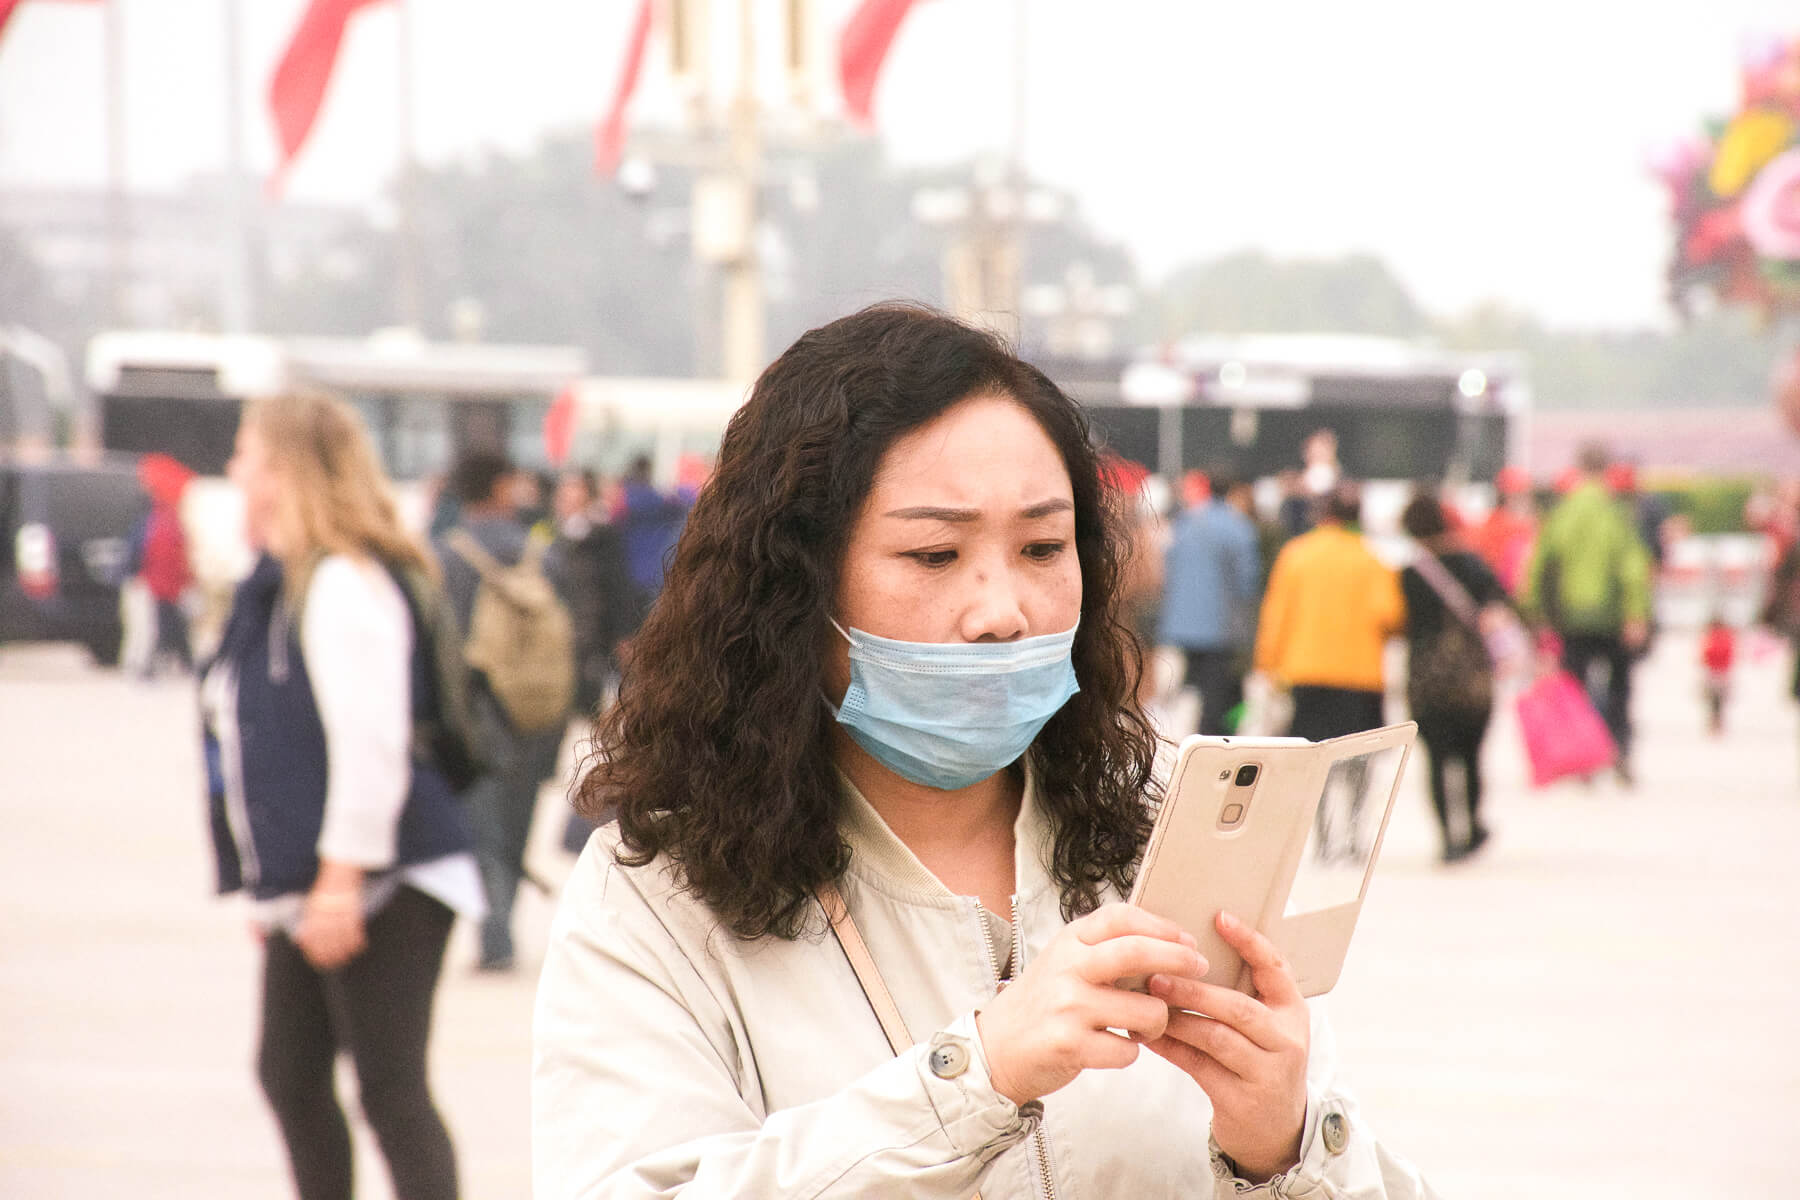 A Chinese woman looking at her phone whilst wearing a light blue face mask